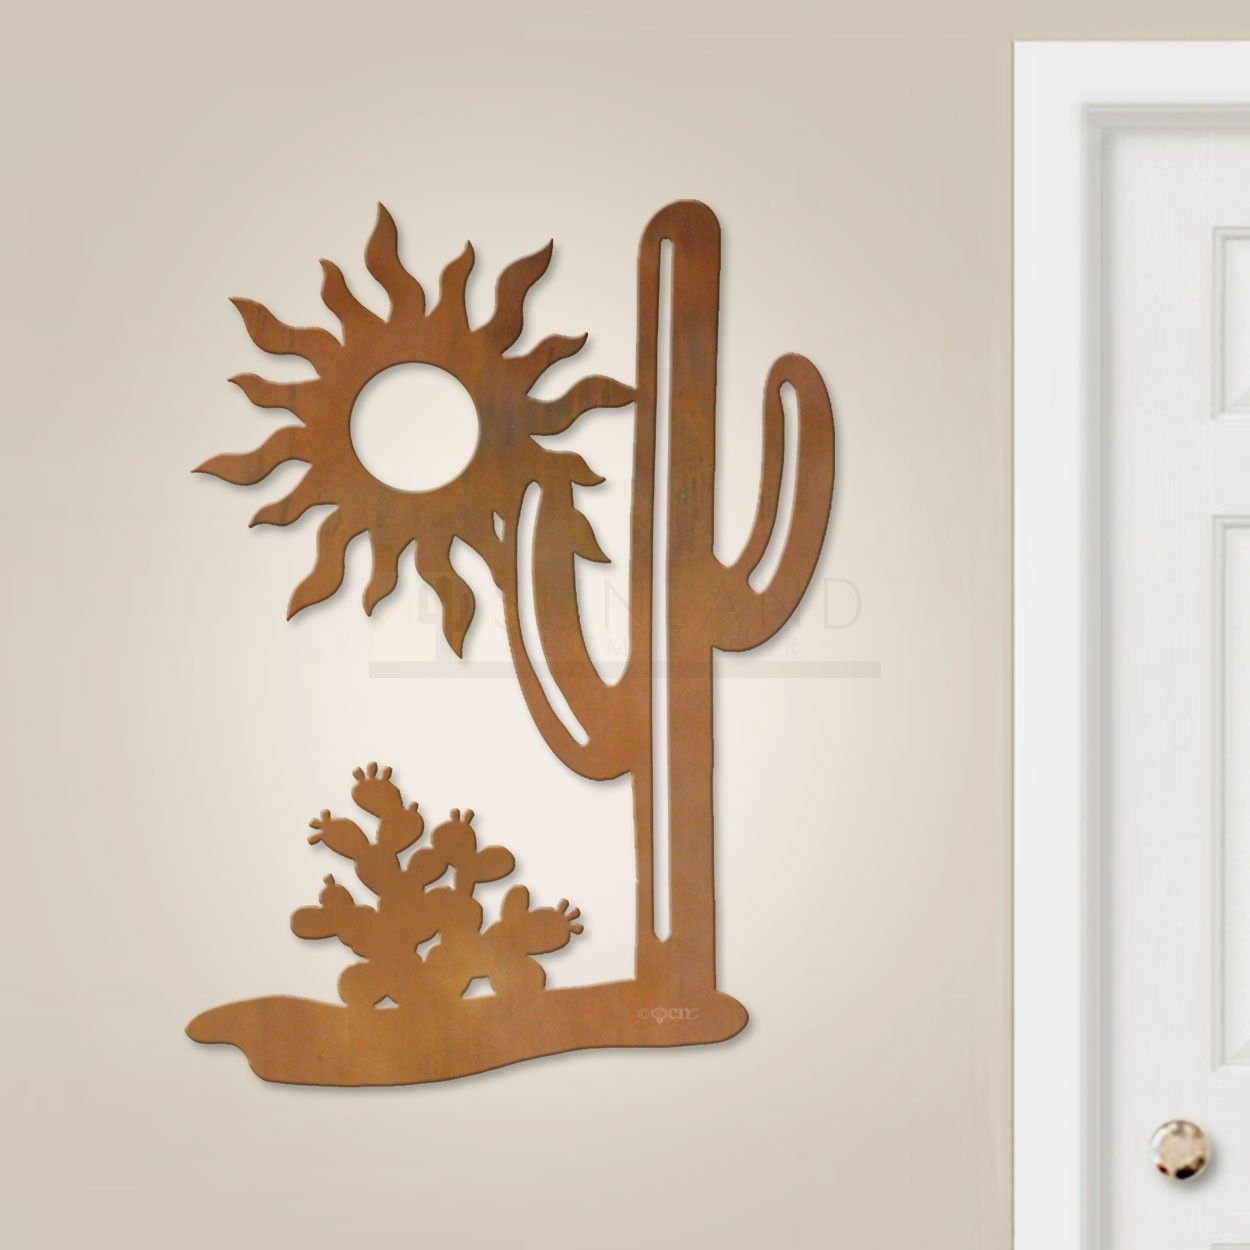 Cold Nose Creations Brings You This Original Southwest Cactus Scene 36in Vertical Large Metal Wall Art Large Metal Wall Art Wall Hanging Designs Metal Wall Art